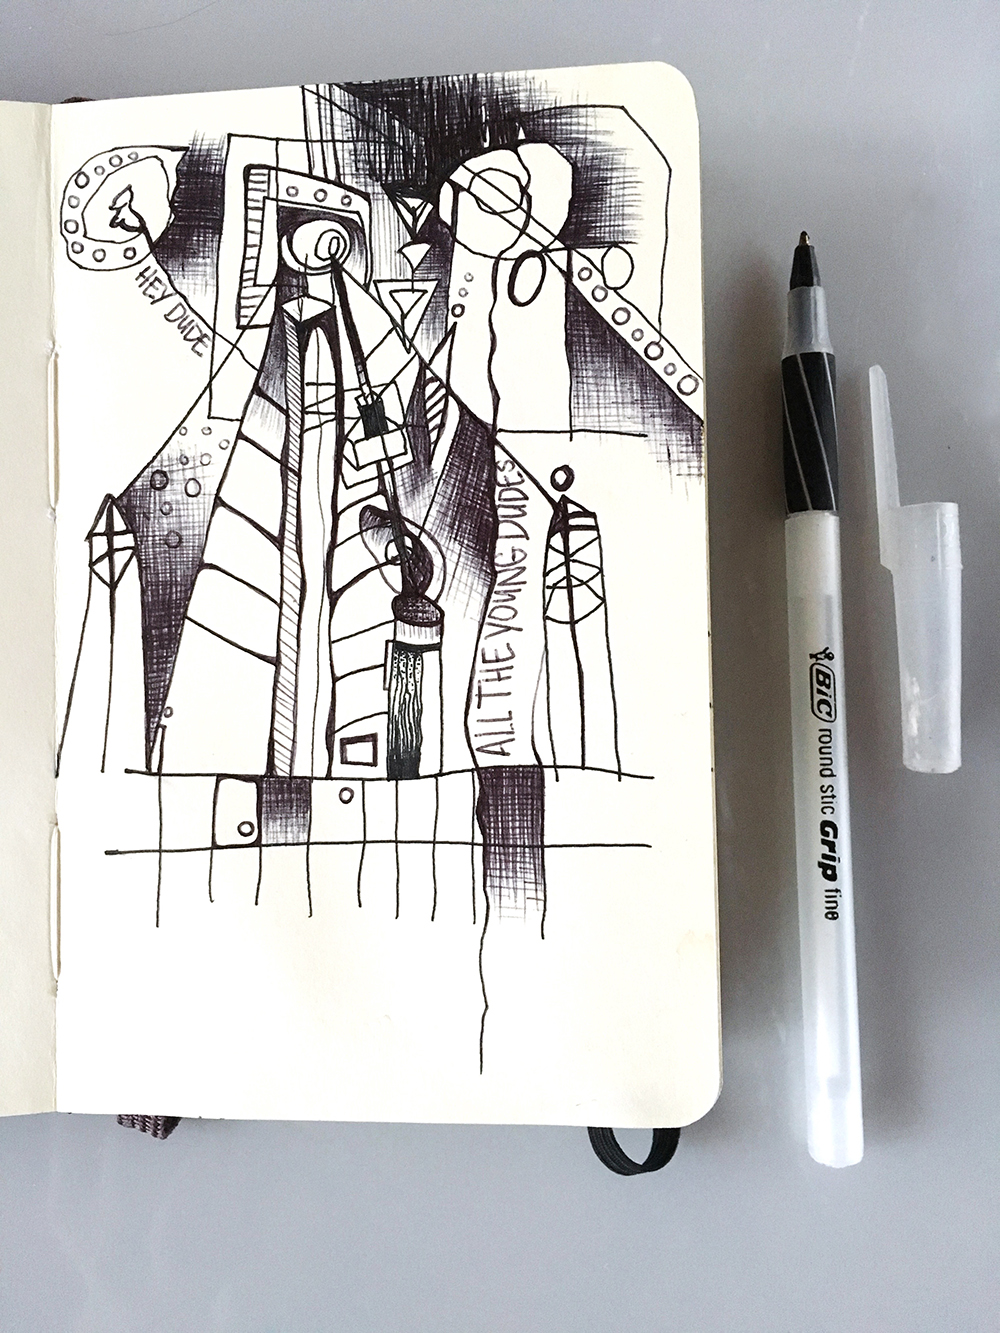 A Moleksine drawing from 2008. I must have been listening to Bowie at the time.